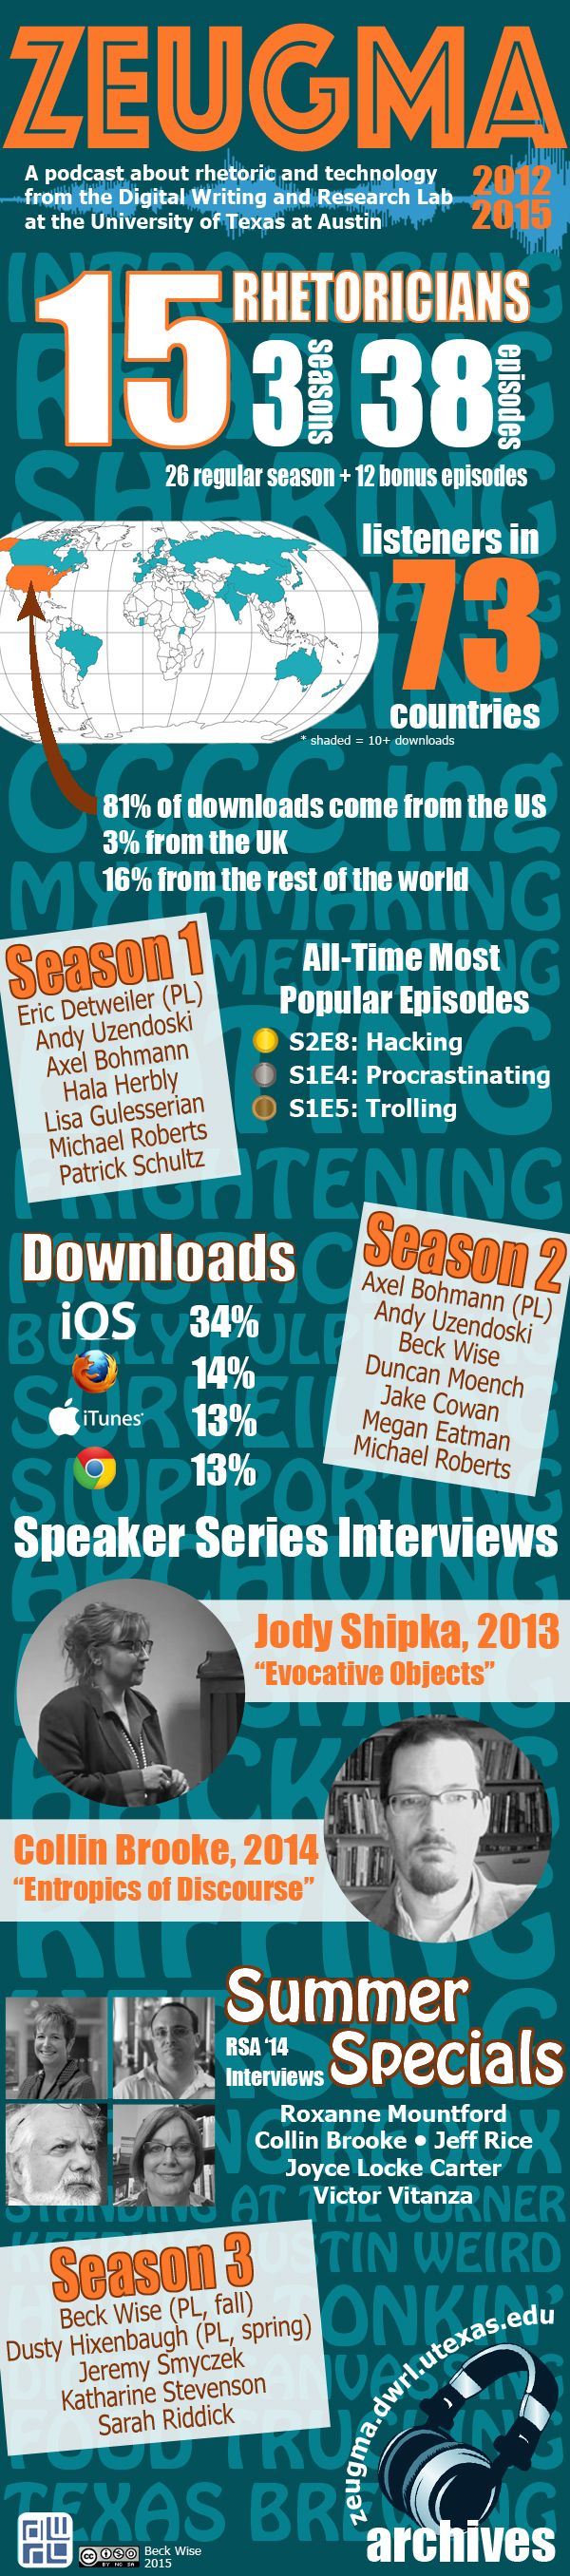 """This infographic recaps the history of Zeugma. The Digital Writing and Research Lab produced Zeugma, a podcast about rhetoric and technology, from 2012 to 2015. In those three years, 15 rhetoricians produced three seasons of the podcast and 38 episodes in total, with 26 episodes across the regular seasons and 12 special features. Zeugma had listeners in 73 countries, with 81% of downloads originating in the United States, 3% in the United Kingdom, and 16% from the rest of the world. The most popular episode of the program was the eighth episode of the second season, """"Hacking"""". The fourth episode of season one, """"Procrastinating"""", came in second, and the fifth episode of season one, """"Trolling"""", third. Most downloads of Zeugma came from Apple devices -- 34% from iOS and 13% from iTunes. 14% of listeners accessed Zeugma using Mozilla or Firefox, and 13% used Chrome. Zeugma conducted interviews with two of the guests at the DWRL's annual Speaker Series. Jody Shipka spoke on """"Evocative Objects"""" in 2013 and Collin Brooke spoke on """"Entropics of Discourse"""" in 2014. Zeugma also conducted interviews at the 2014 Rhetoric Society of America conference and released these as a series of Summer Specials. The interviewees were Roxanne Mountford, Collin Brooke, Jeff Rice, Joyce Locke Carter and Victor Vitanza. The Season 1 Zeugma team comprised Eric Detweiler (project leader), Andy Uzendoski, Axel Bohmann, Hala Herbly, Lisa Gulesserian, Michael Roberts and Patrick Schultz. The Season 2 Zeugma team comprised Axel Bohmann (project leader), Andy Uzendoski, Beck Wise, Duncan Moench, Jake Cowan, Megan Eatman and Michael Roberts. The Season 3 Zeugma team comprised Beck Wise (project leader, fall), Dusty Hixenbaugh (project leader, spring), Jeremy Smyczek, Katharine Stevenson and Sarah Riddick. Zeugma's archives are still available online at zeugma.dwrl.utexas.edu"""